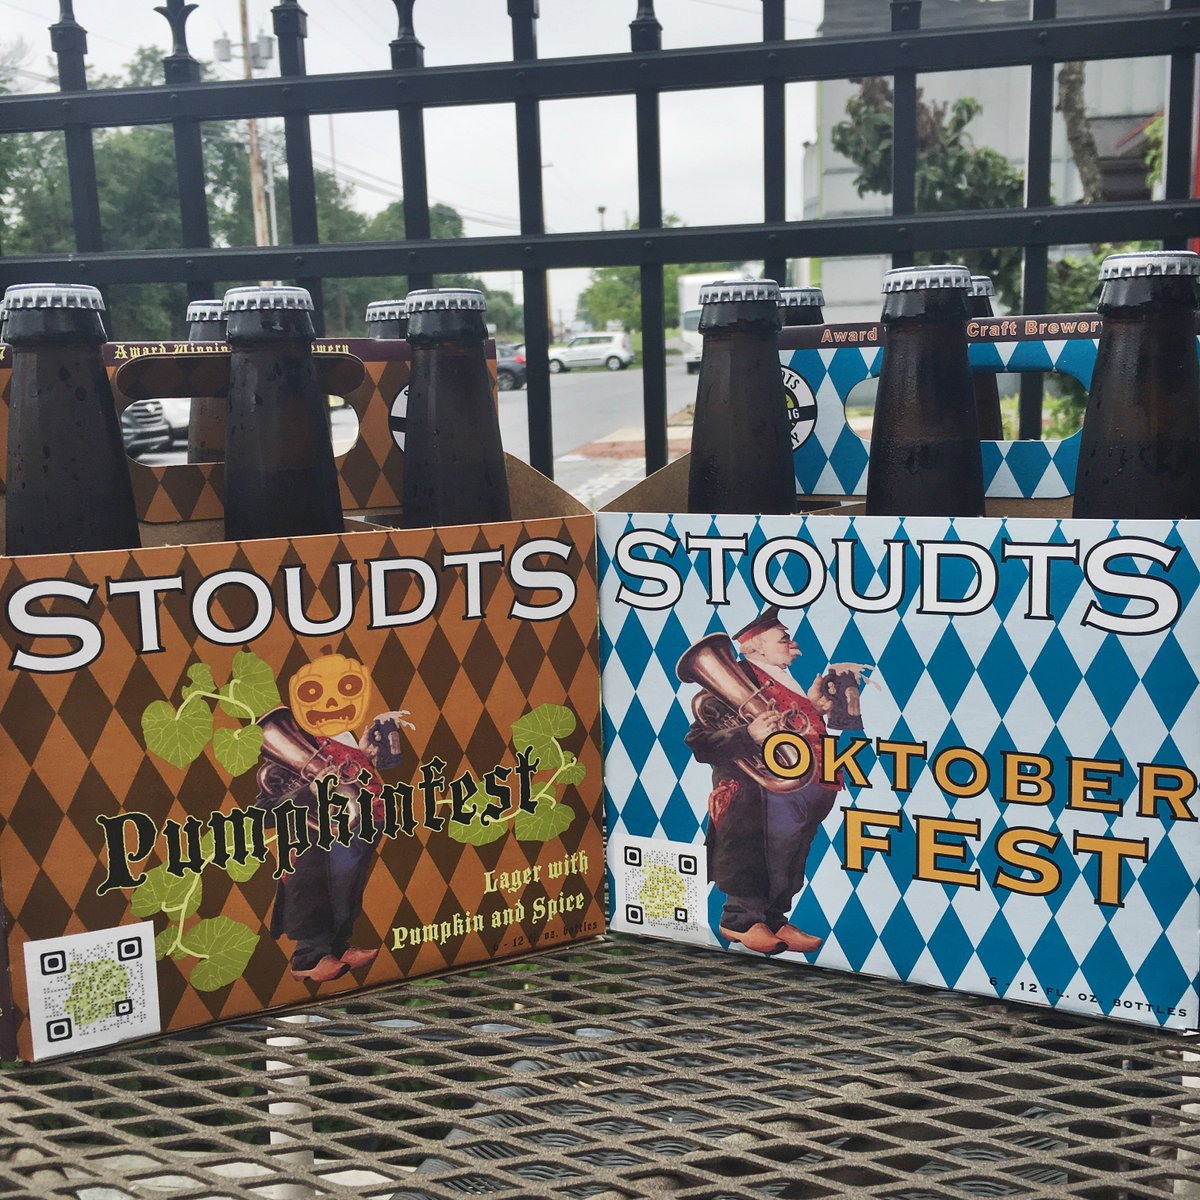 We have fresh brewed Oktoberfest and Pumpkinfest beer available for sale in the brewery and restaurant! #craftbeer https://t.co/jZeuZCWl6w